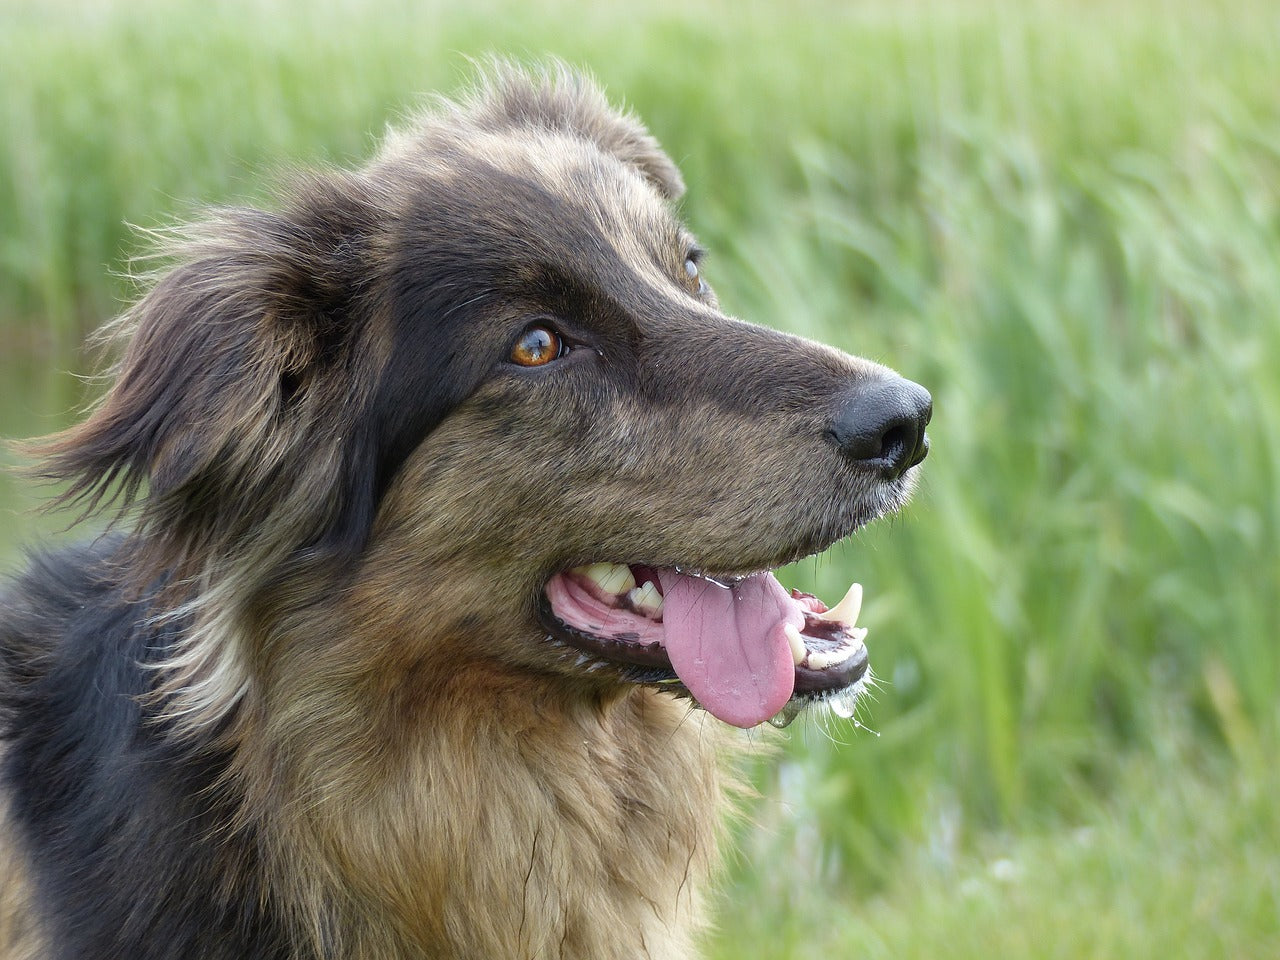 Gum Disease In Dogs: 4 Ways To Prevent It